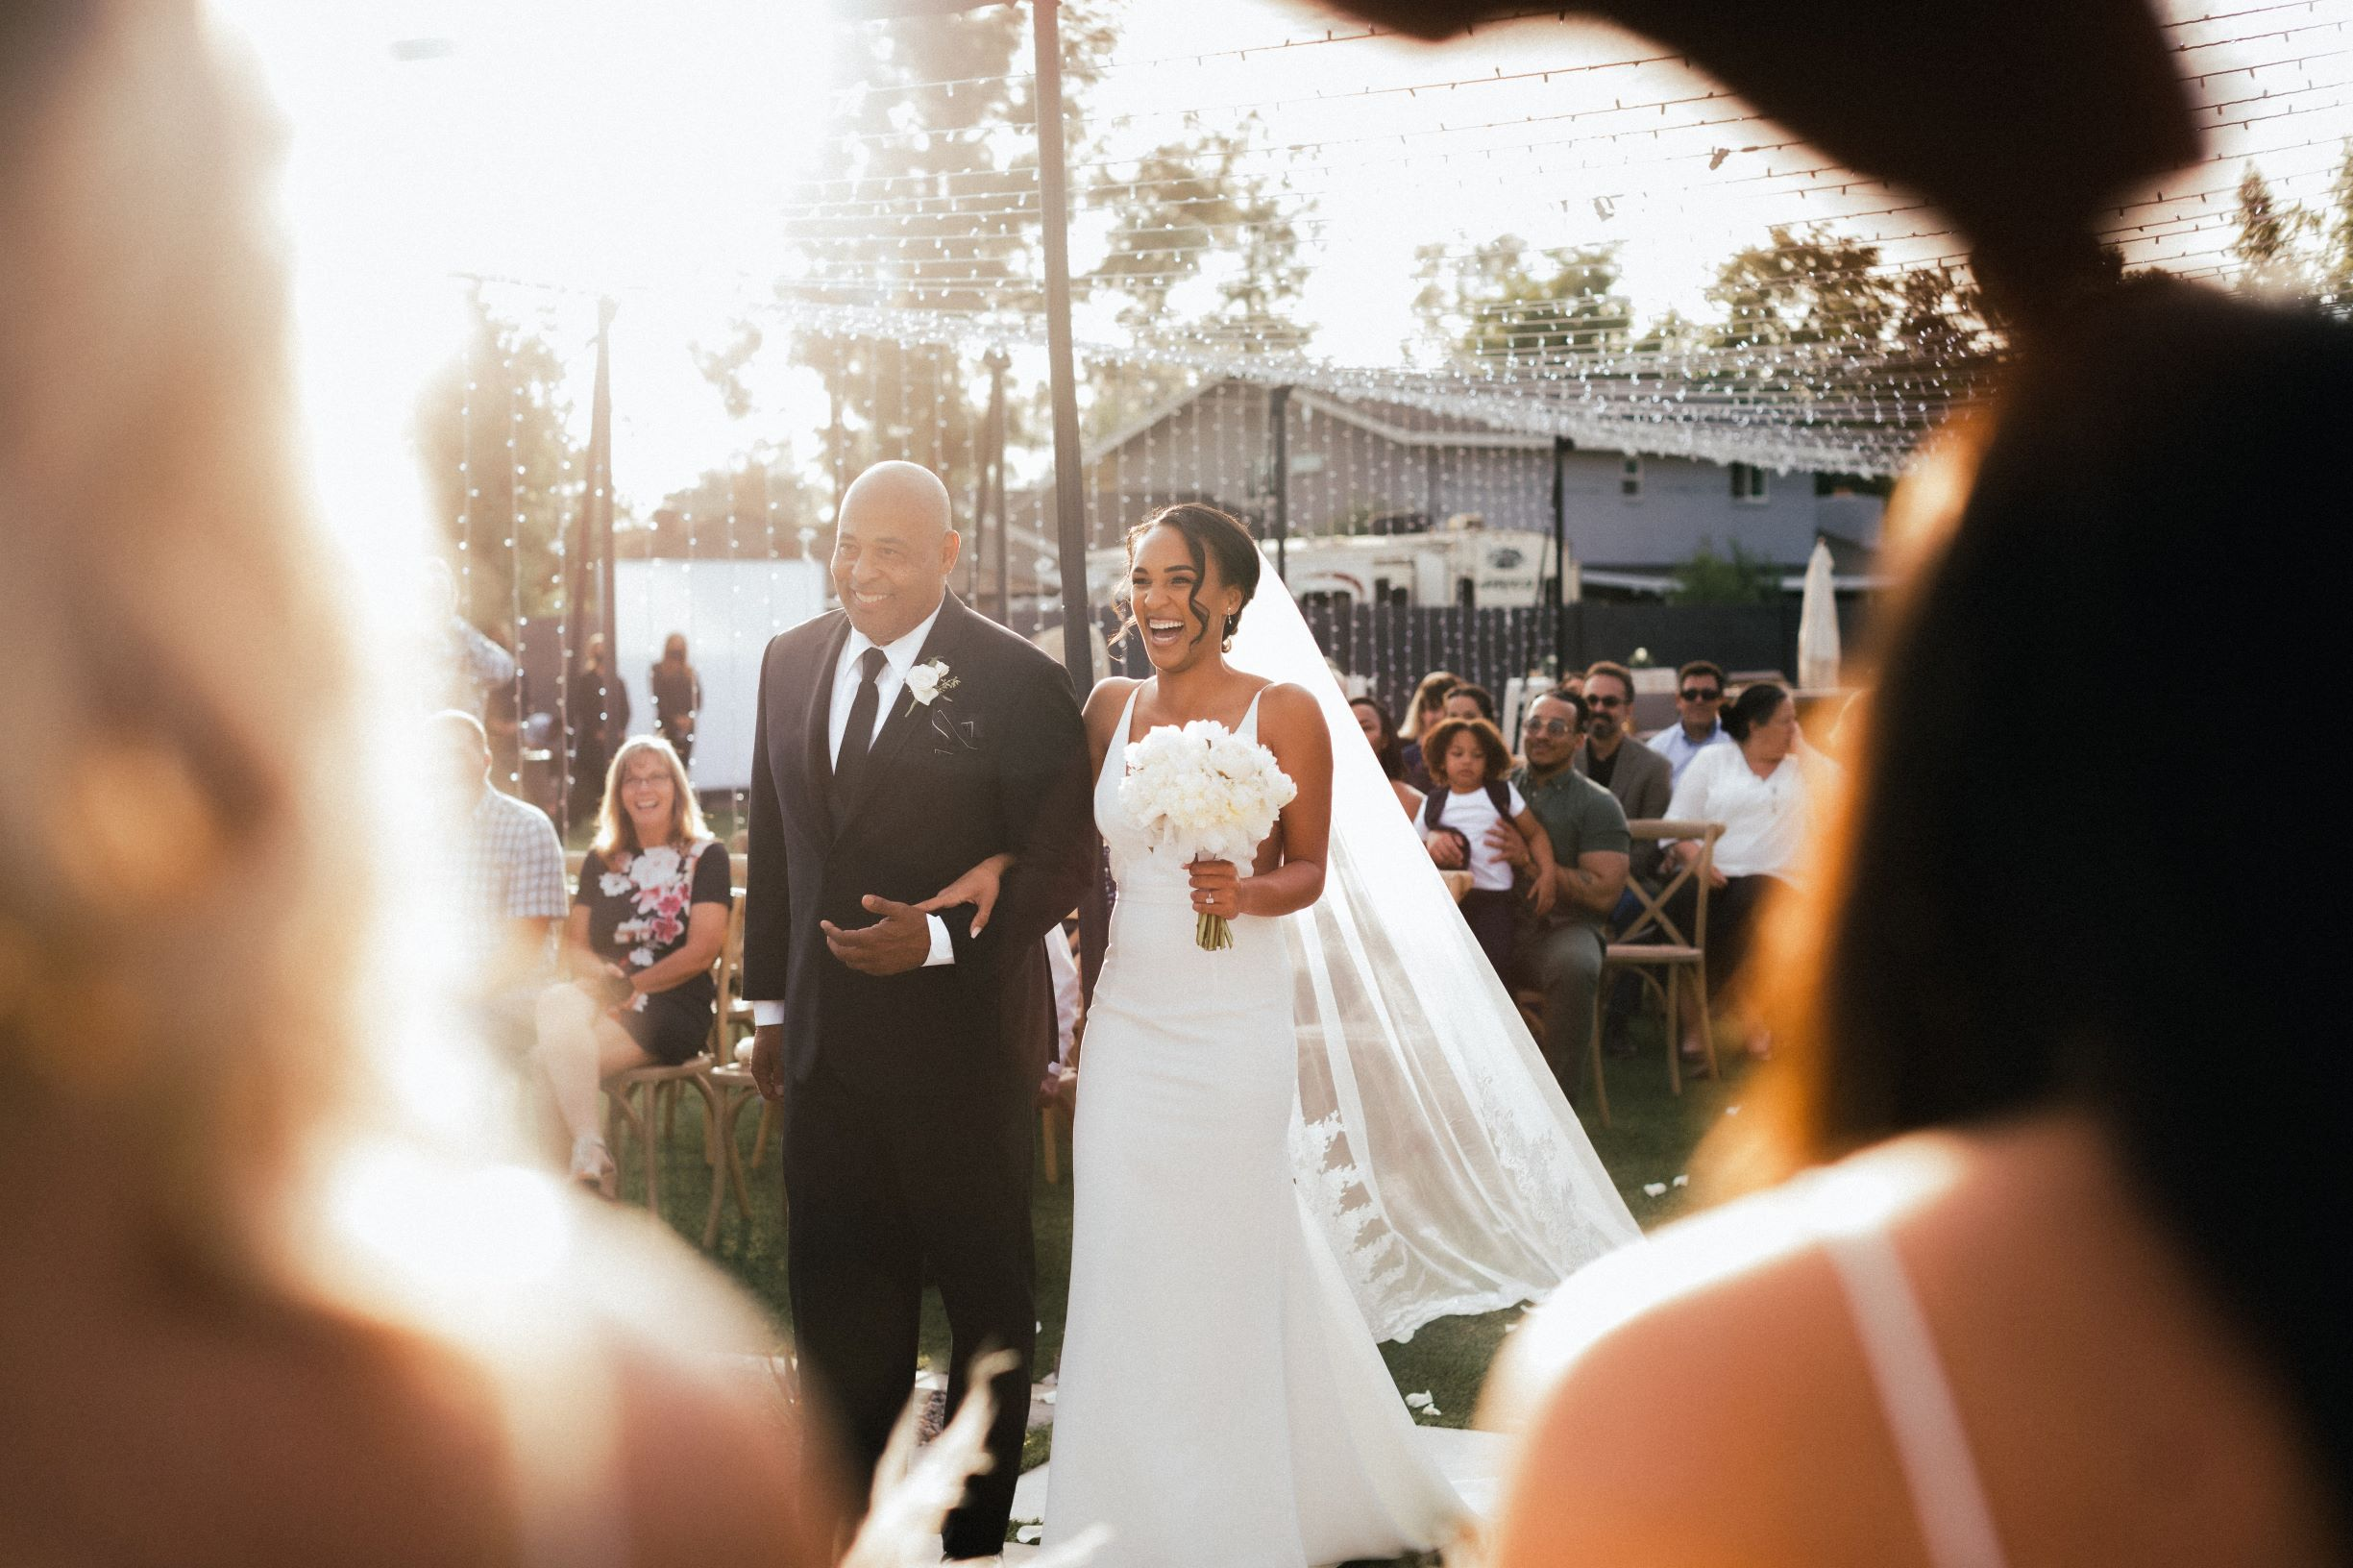 Intimate weddings - father and bride